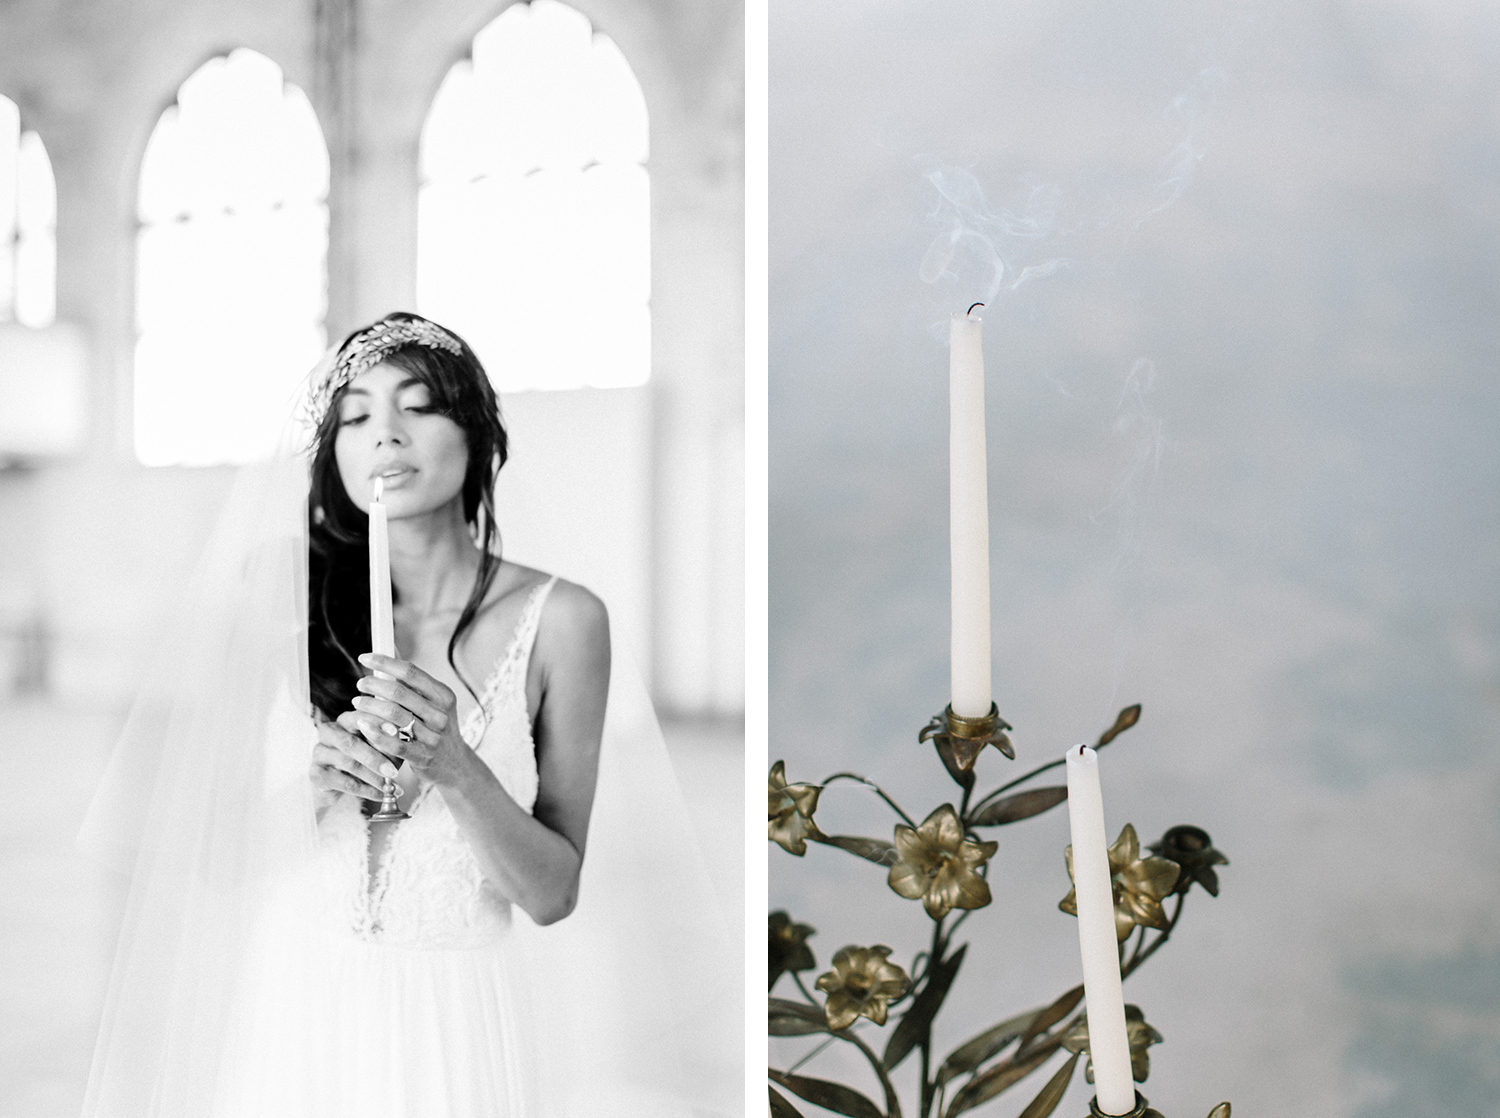 A bride blows out a candle at a destination wedding